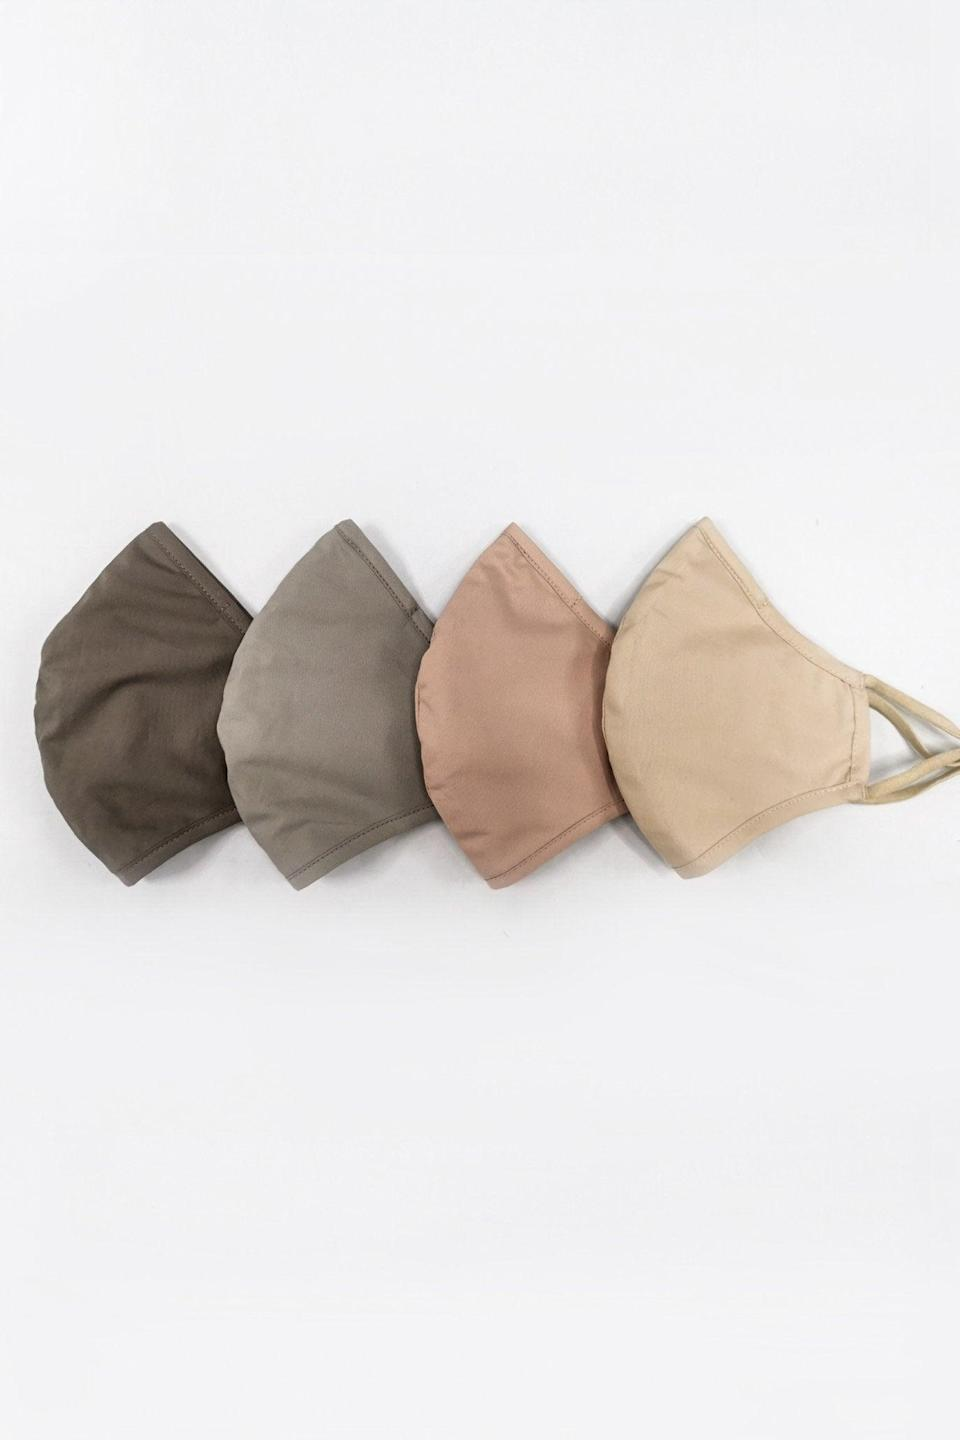 """<h3><a href=""""https://fave.co/3dlFX9f"""" rel=""""nofollow noopener"""" target=""""_blank"""" data-ylk=""""slk:Jonathan Simkhai Fabric Mask Pack"""" class=""""link rapid-noclick-resp"""">Jonathan Simkhai Fabric Mask Pack</a></h3> <br>Offered in packs of four containing a spectrum of neutral colors that reflect the sleek Jonathan Simkhai design codes, these masks from the designer label feature an optional pouch for removable filter use. For every pack purchased, Jonathan Simkhai will donate a civilian mask to local front-line essential workers in need of non-medical mask protection. <br><br><strong>Jonathan Simkhai</strong> Fabric Mask Pack, $, available at <a href=""""https://go.skimresources.com/?id=30283X879131&url=https%3A%2F%2Ffave.co%2F3dlFX9f"""" rel=""""nofollow noopener"""" target=""""_blank"""" data-ylk=""""slk:Jonathan Simkhai"""" class=""""link rapid-noclick-resp"""">Jonathan Simkhai</a><br>"""